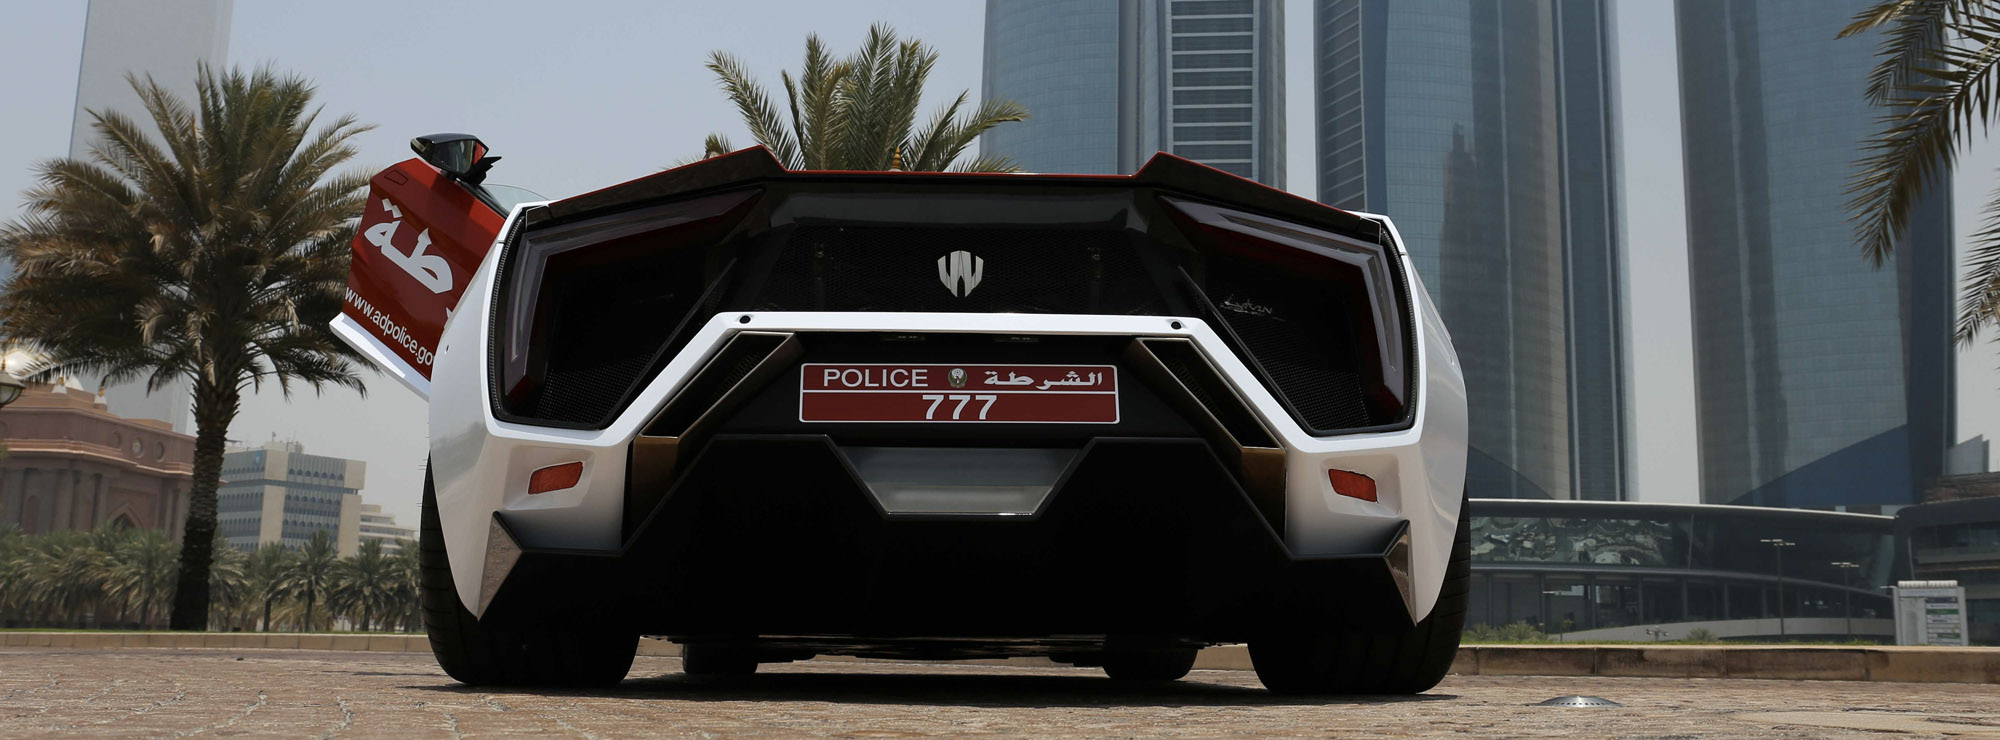 Dubai to replace real police with robocops in 2017 – Fanatical Futurist by International Keynote Speaker Matthew Griffin